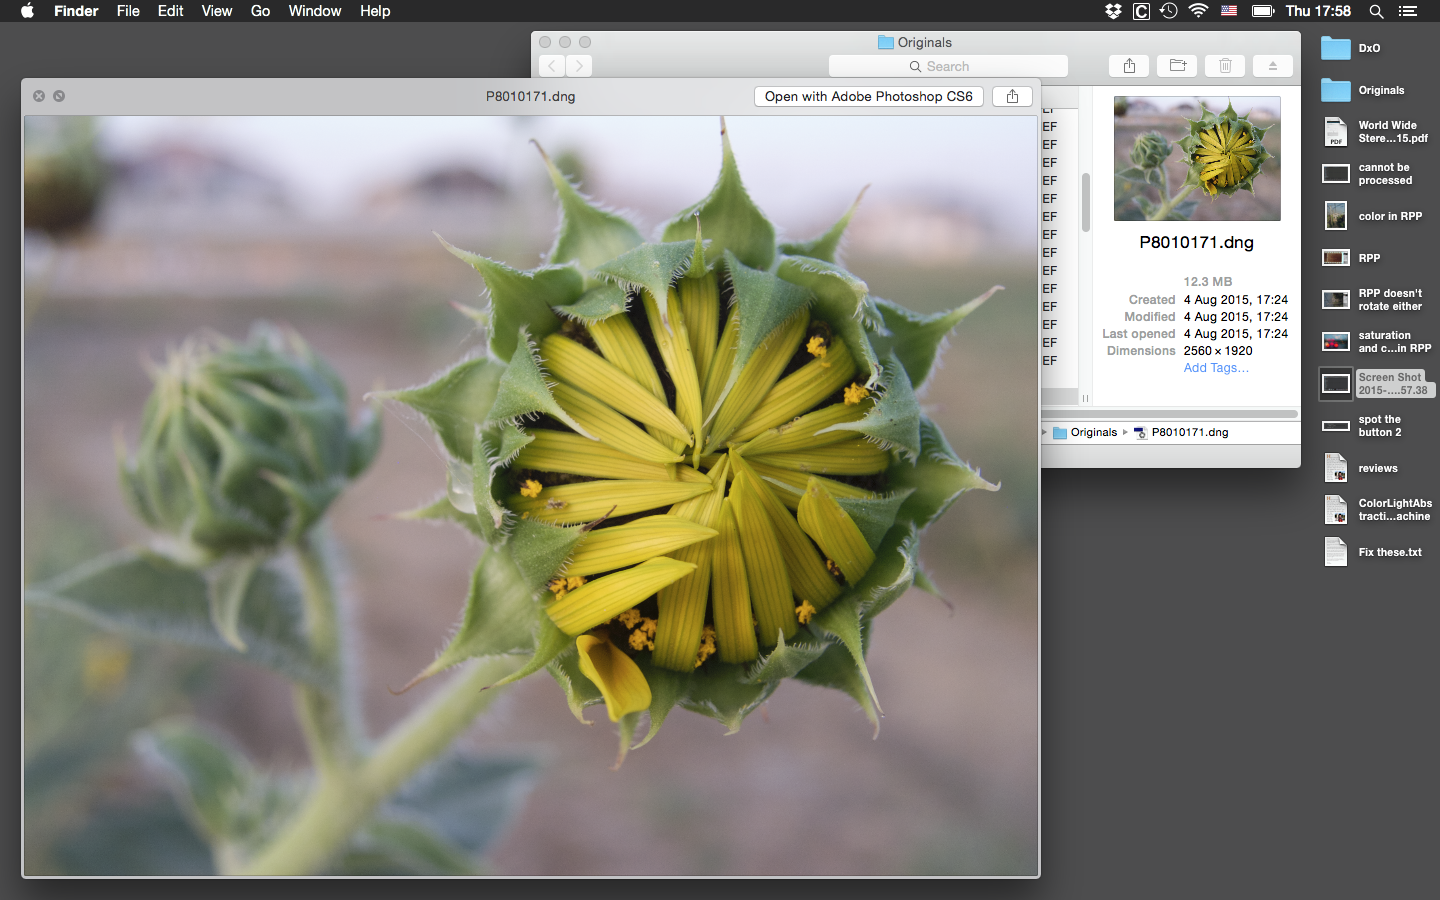 But even the Finder can see it... what's DxO thinking?